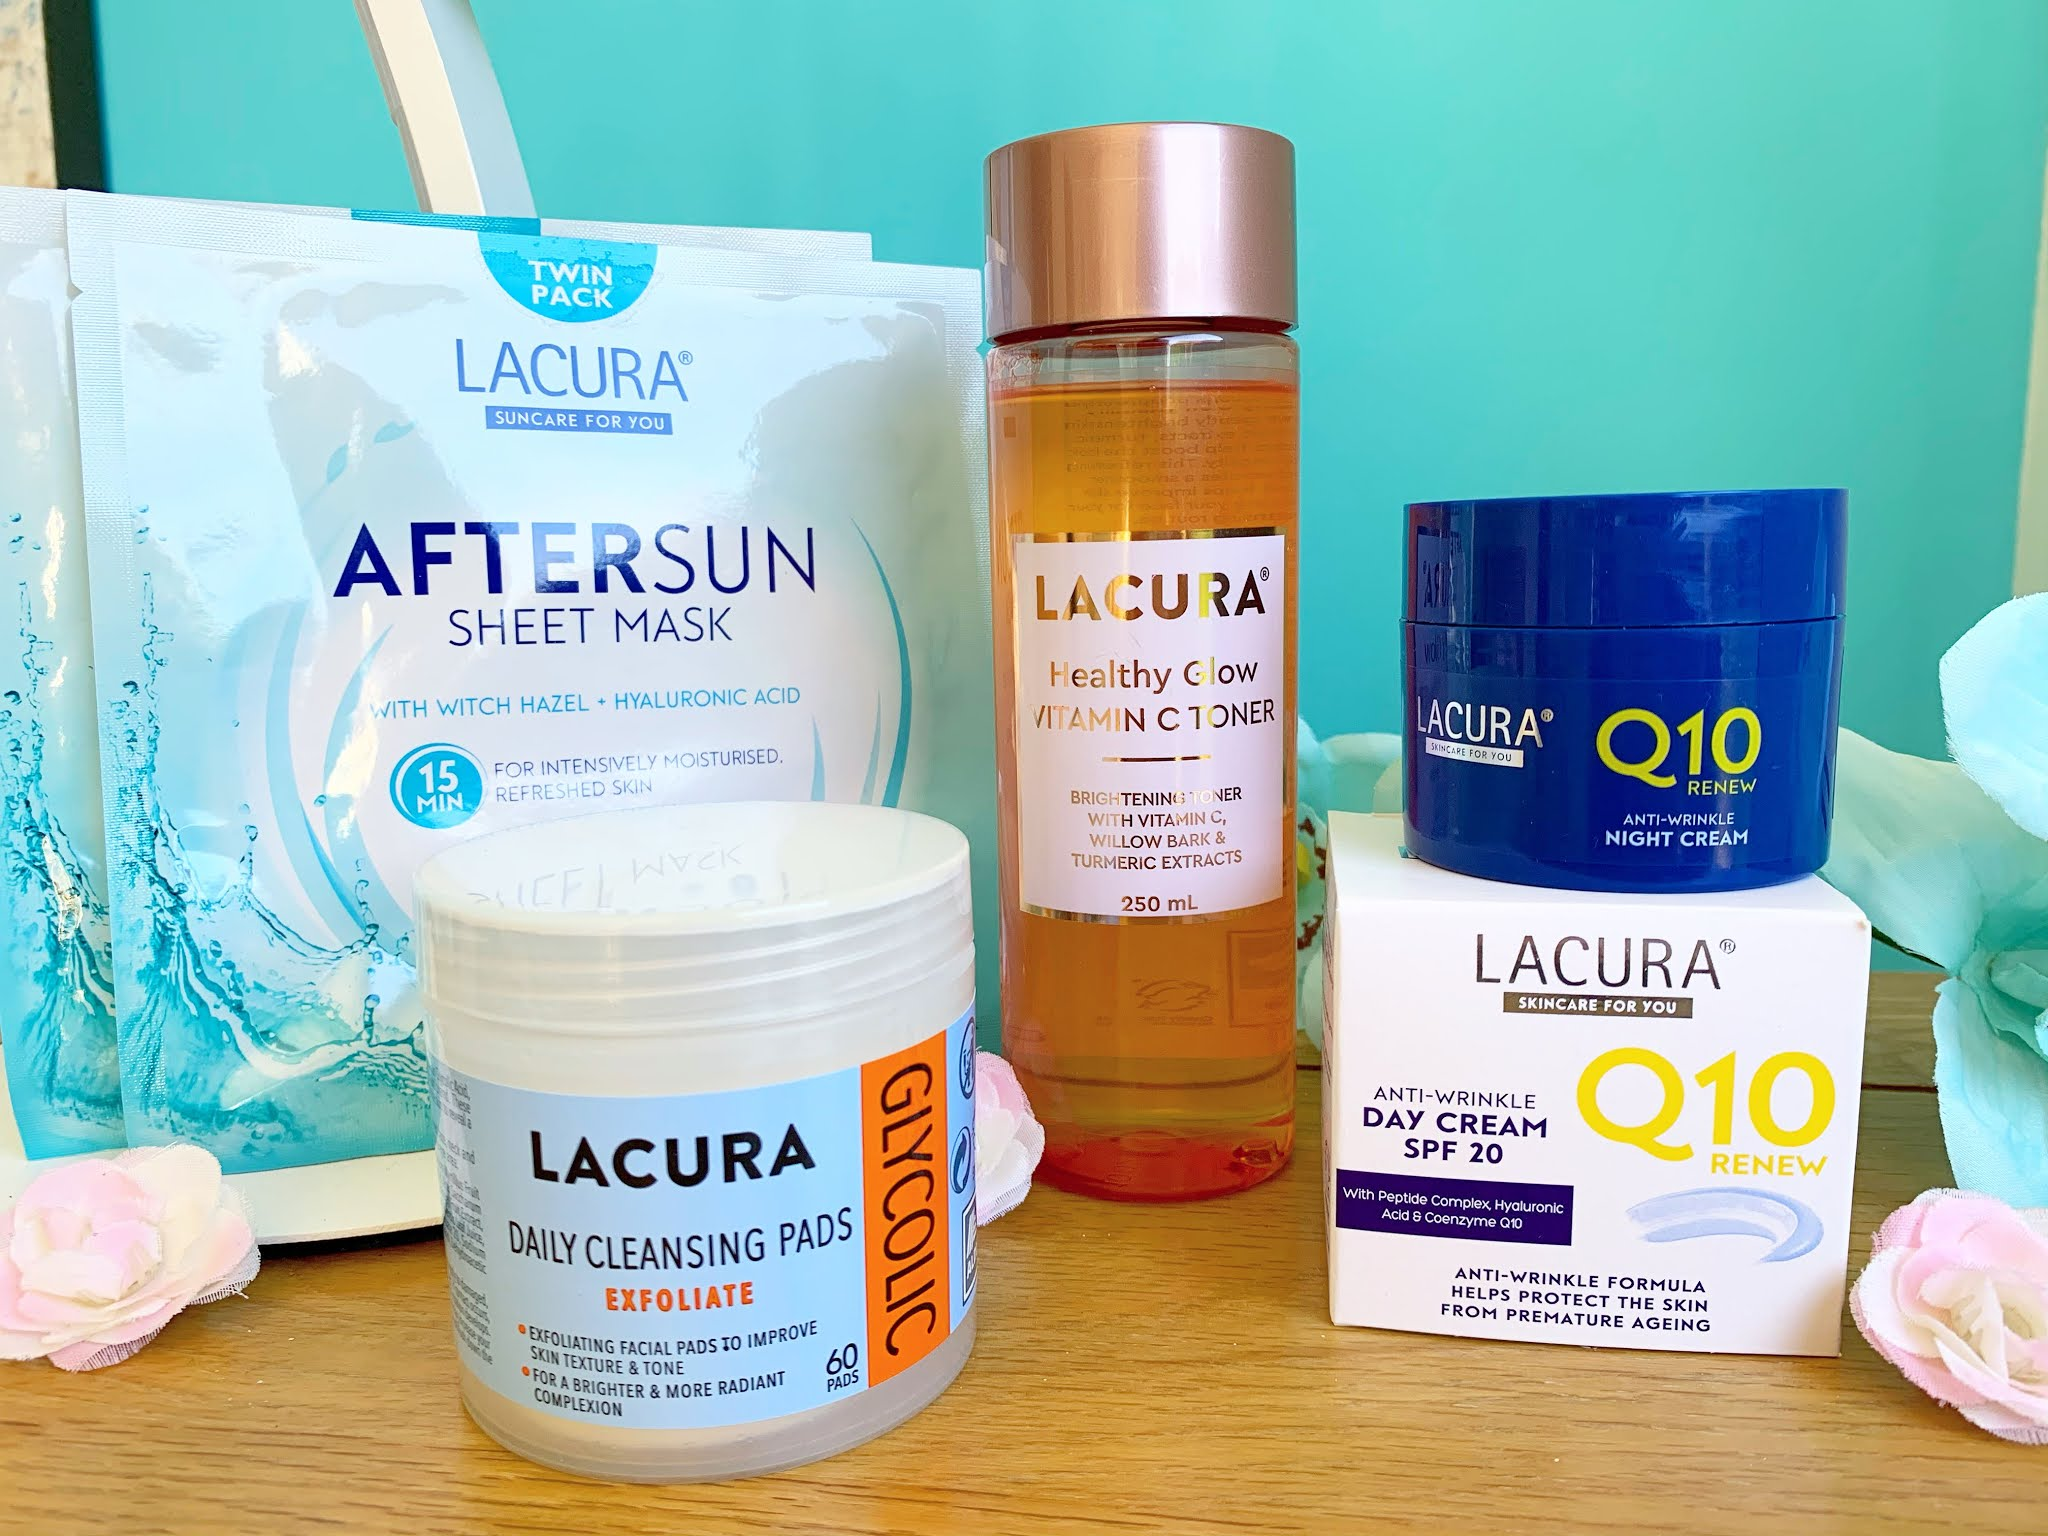 Lacura beauty products on a table